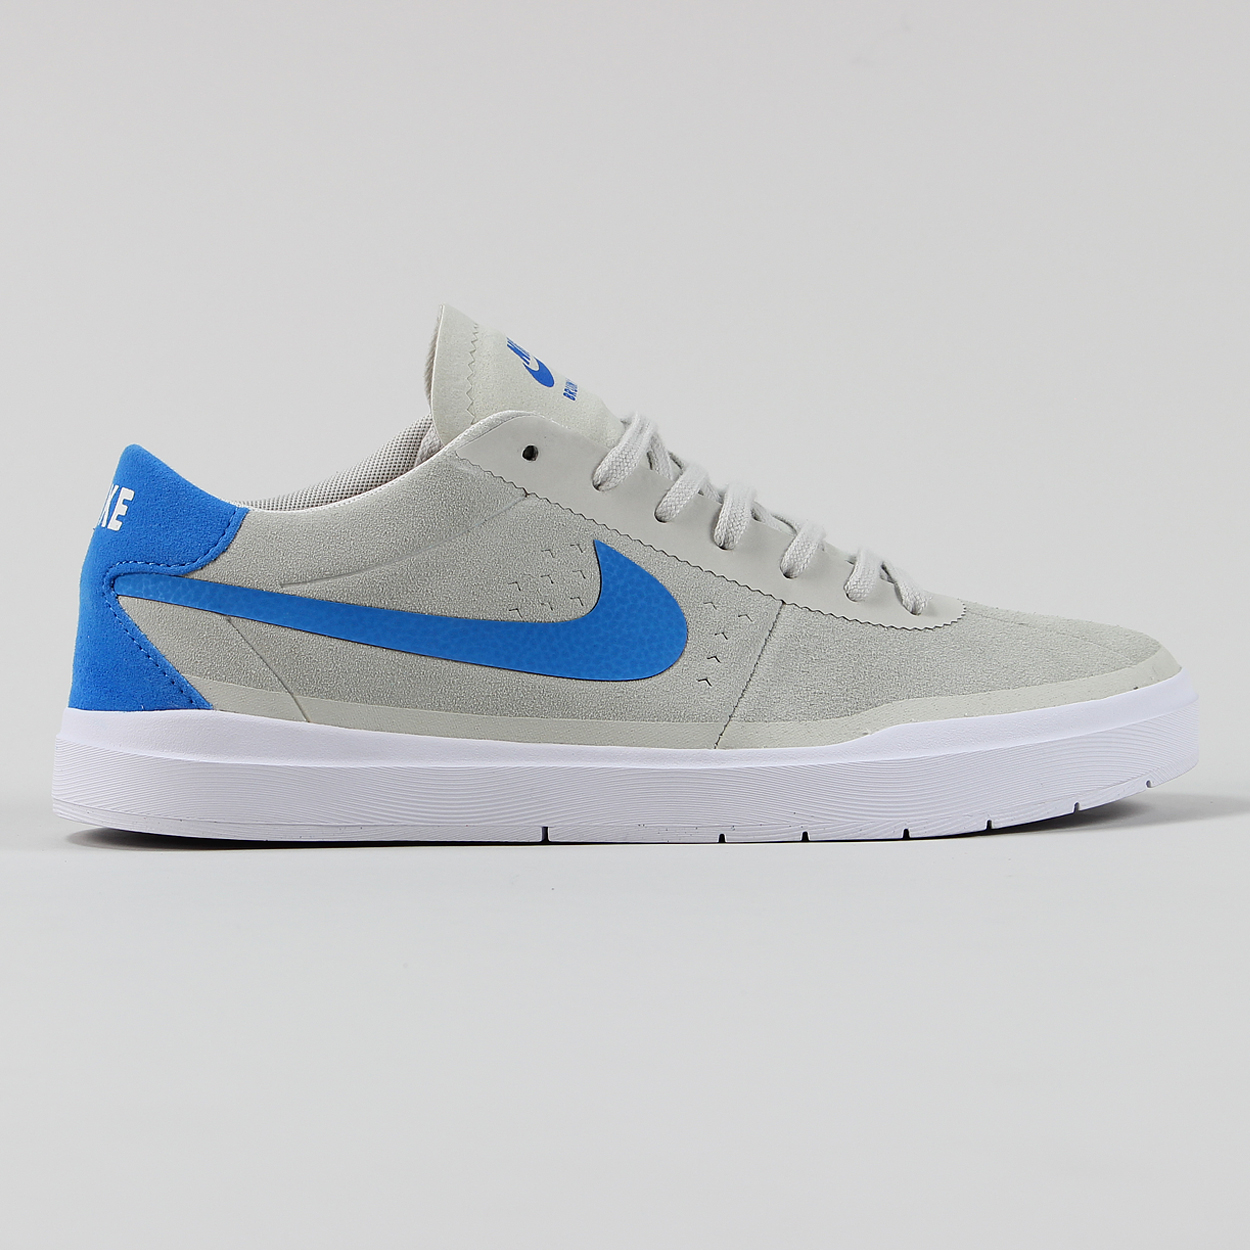 1453498dc642 Nike SB Skateboarding Bruin Hyperfeel Trainer Shoes White Blue £48.75